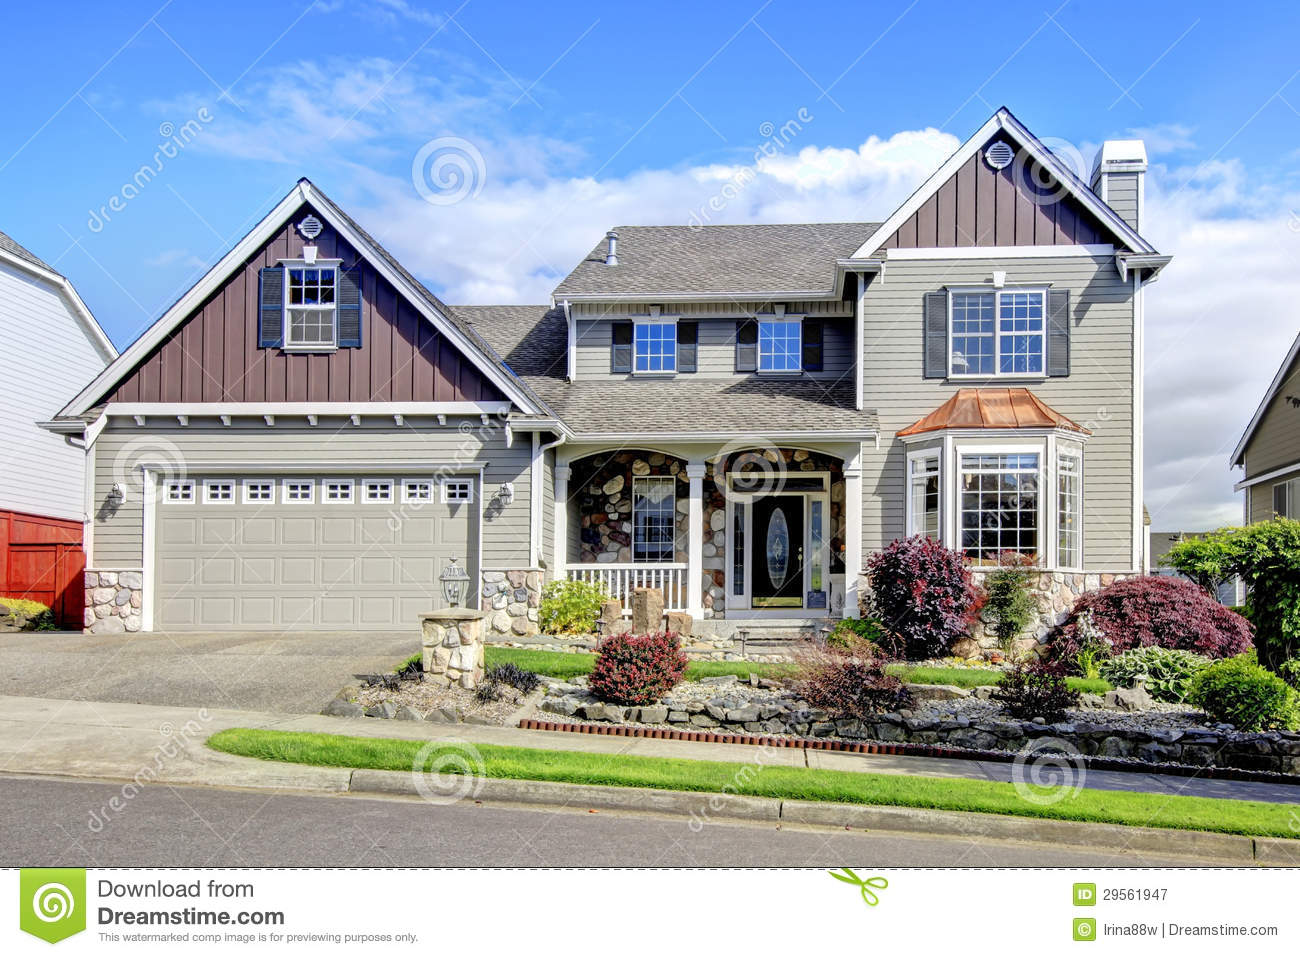 Home Exterior beautiful new home exterior royalty free stock photography - image